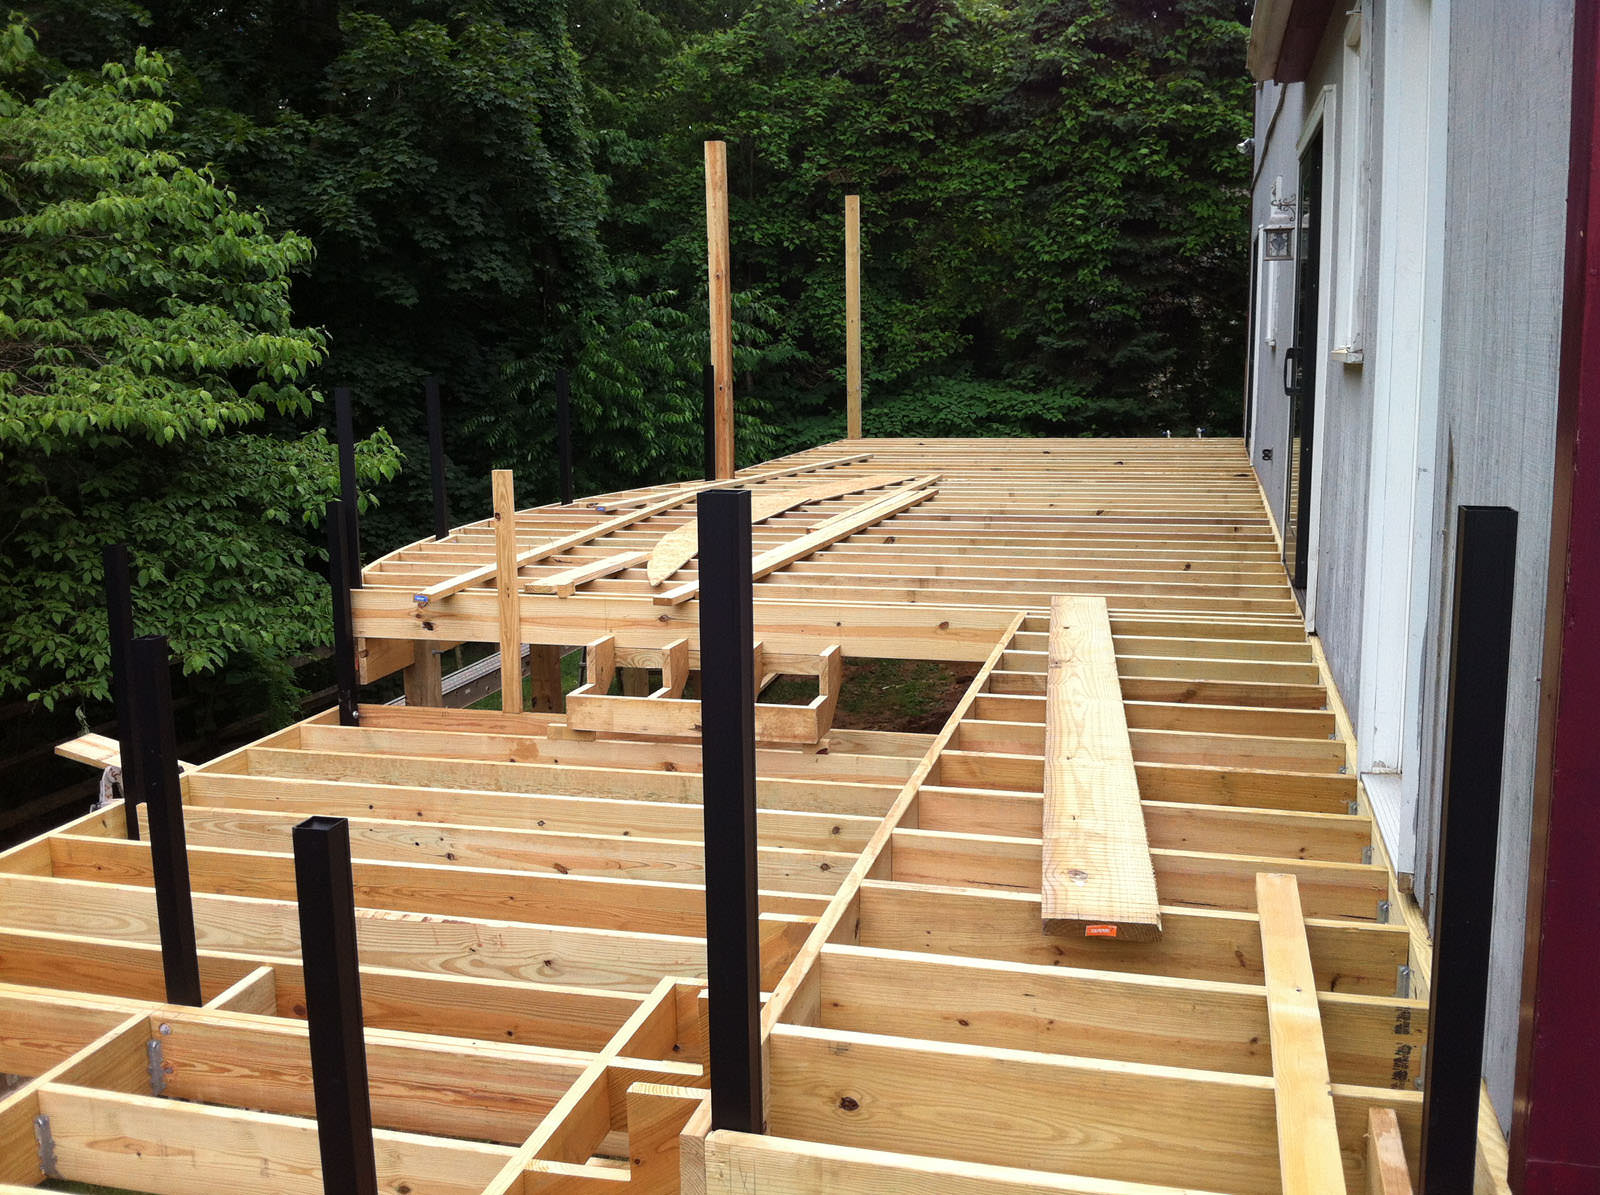 With the old pressure treated deck removed, the new deck framing started right away!